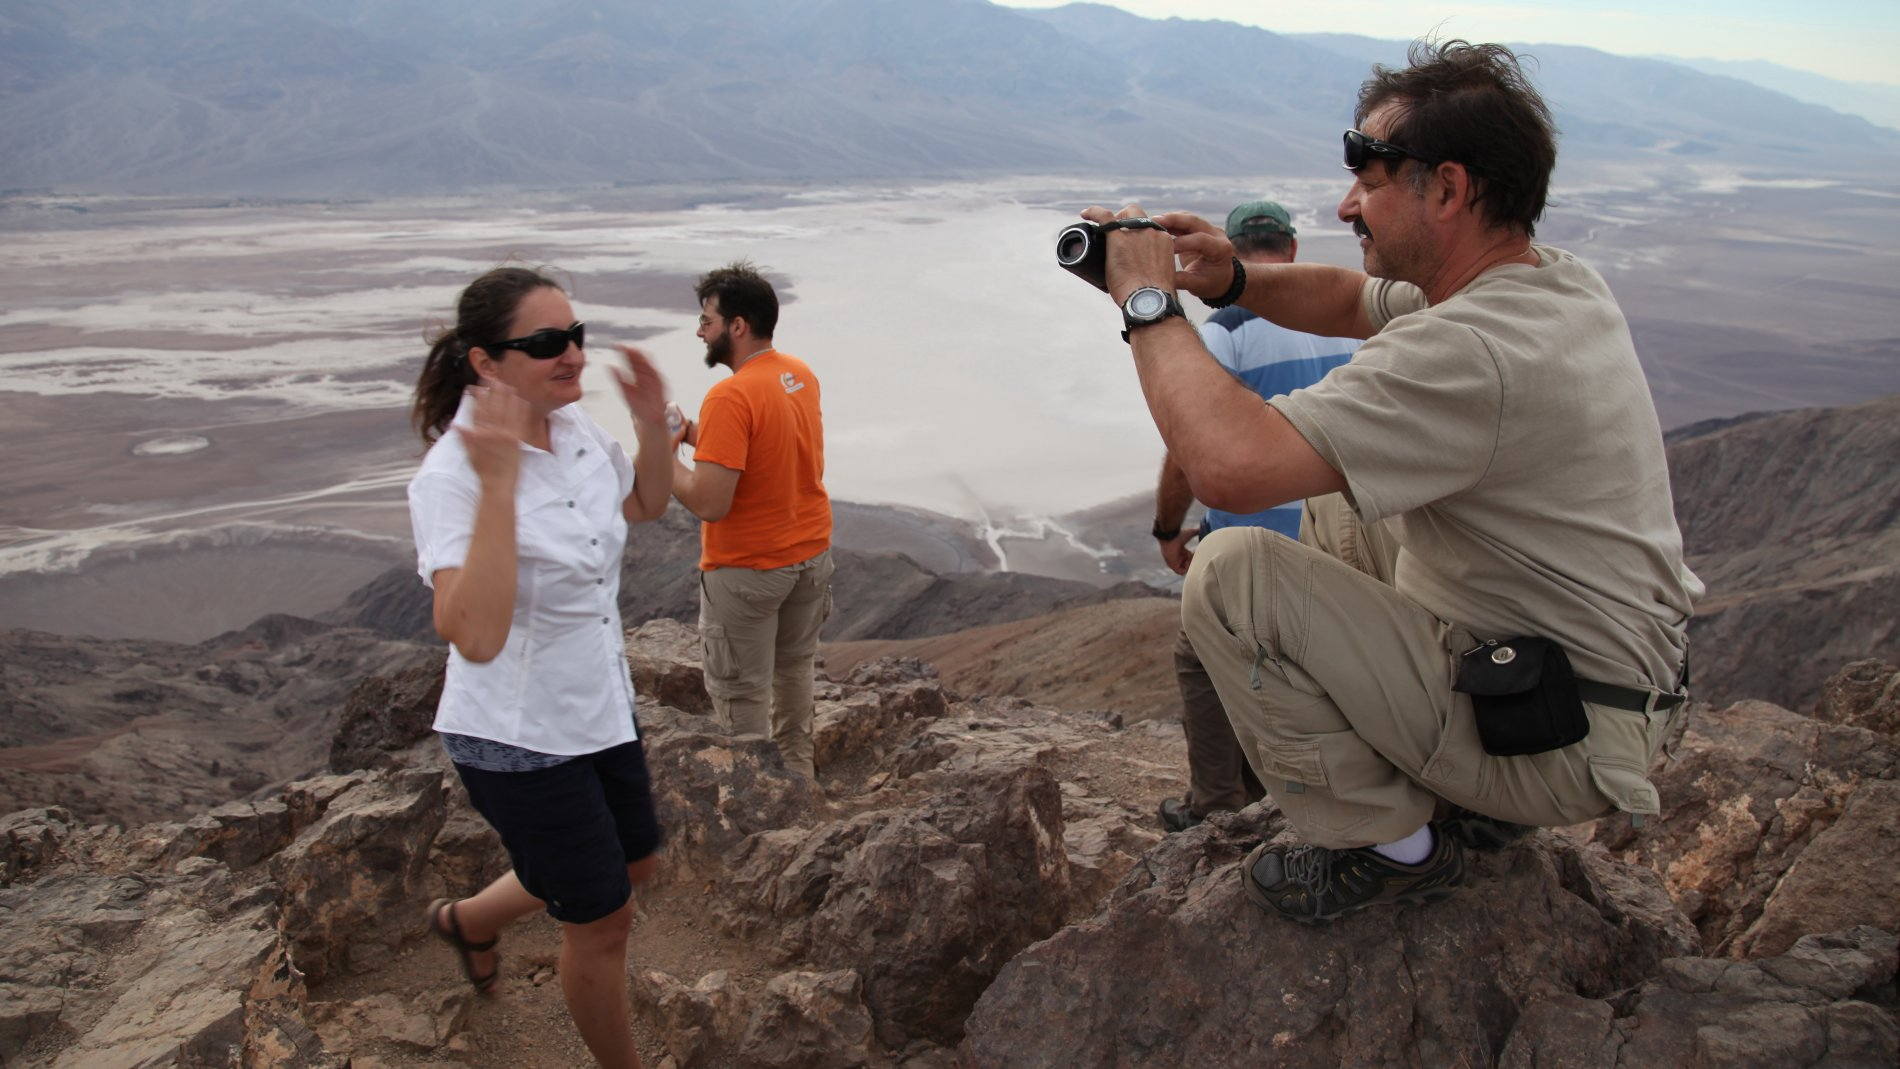 IMG_1103.JPG: Photo shoot, location Death Valley!  :-)